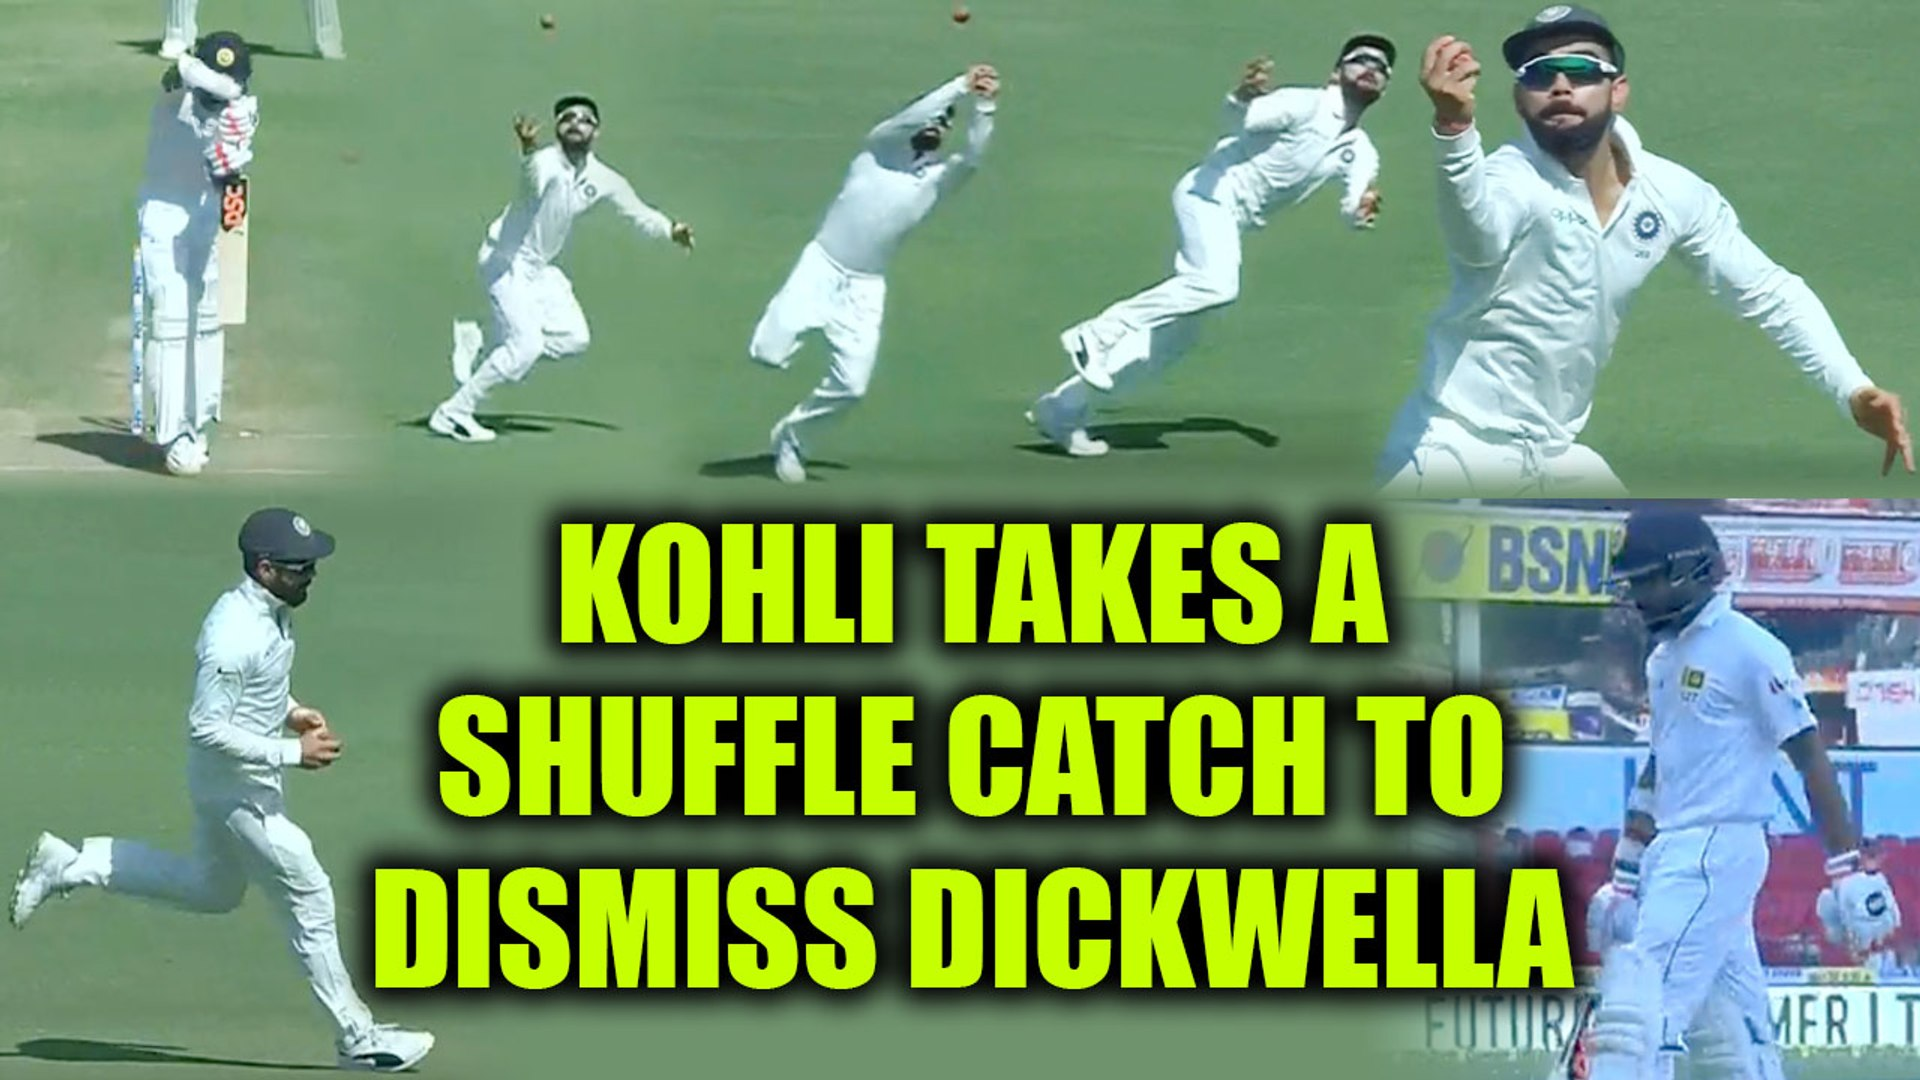 India vs SL 2nd test : Virat Kohli dismisses Dickwella, takes a shuffling catch | Oneindia News